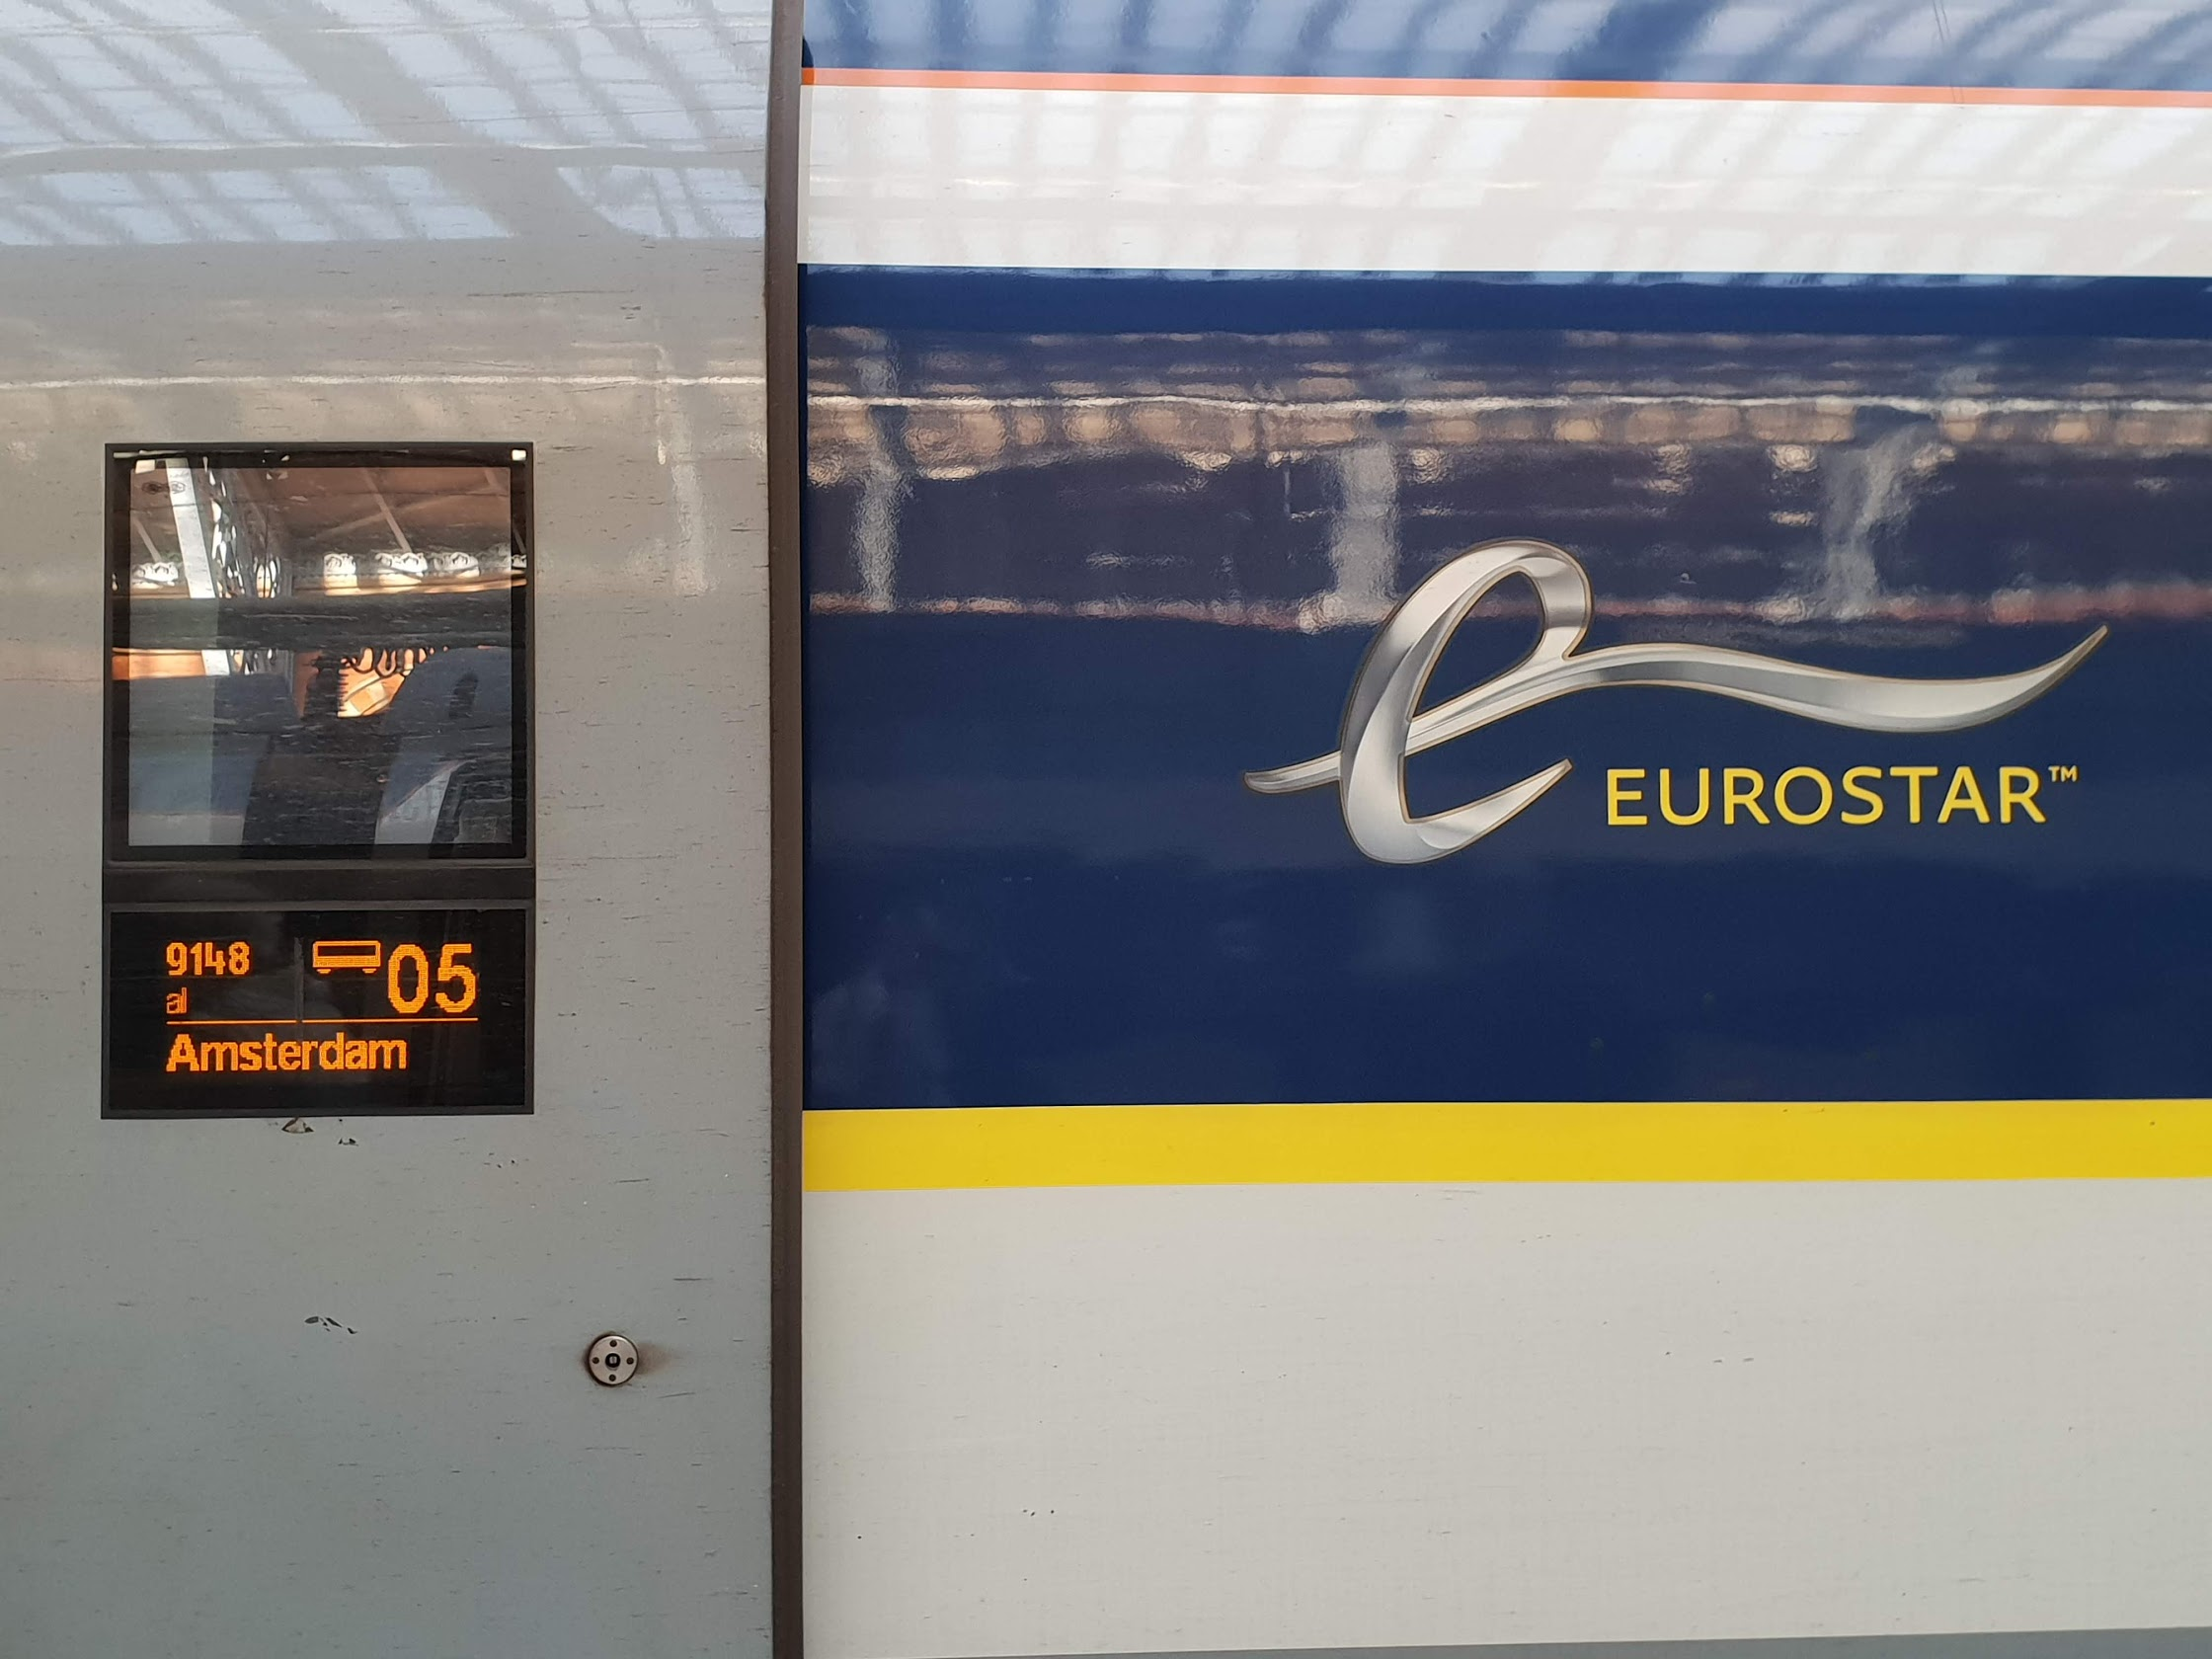 Eurostar standard premier review - travelling from London to Rotterdam by Eurostar